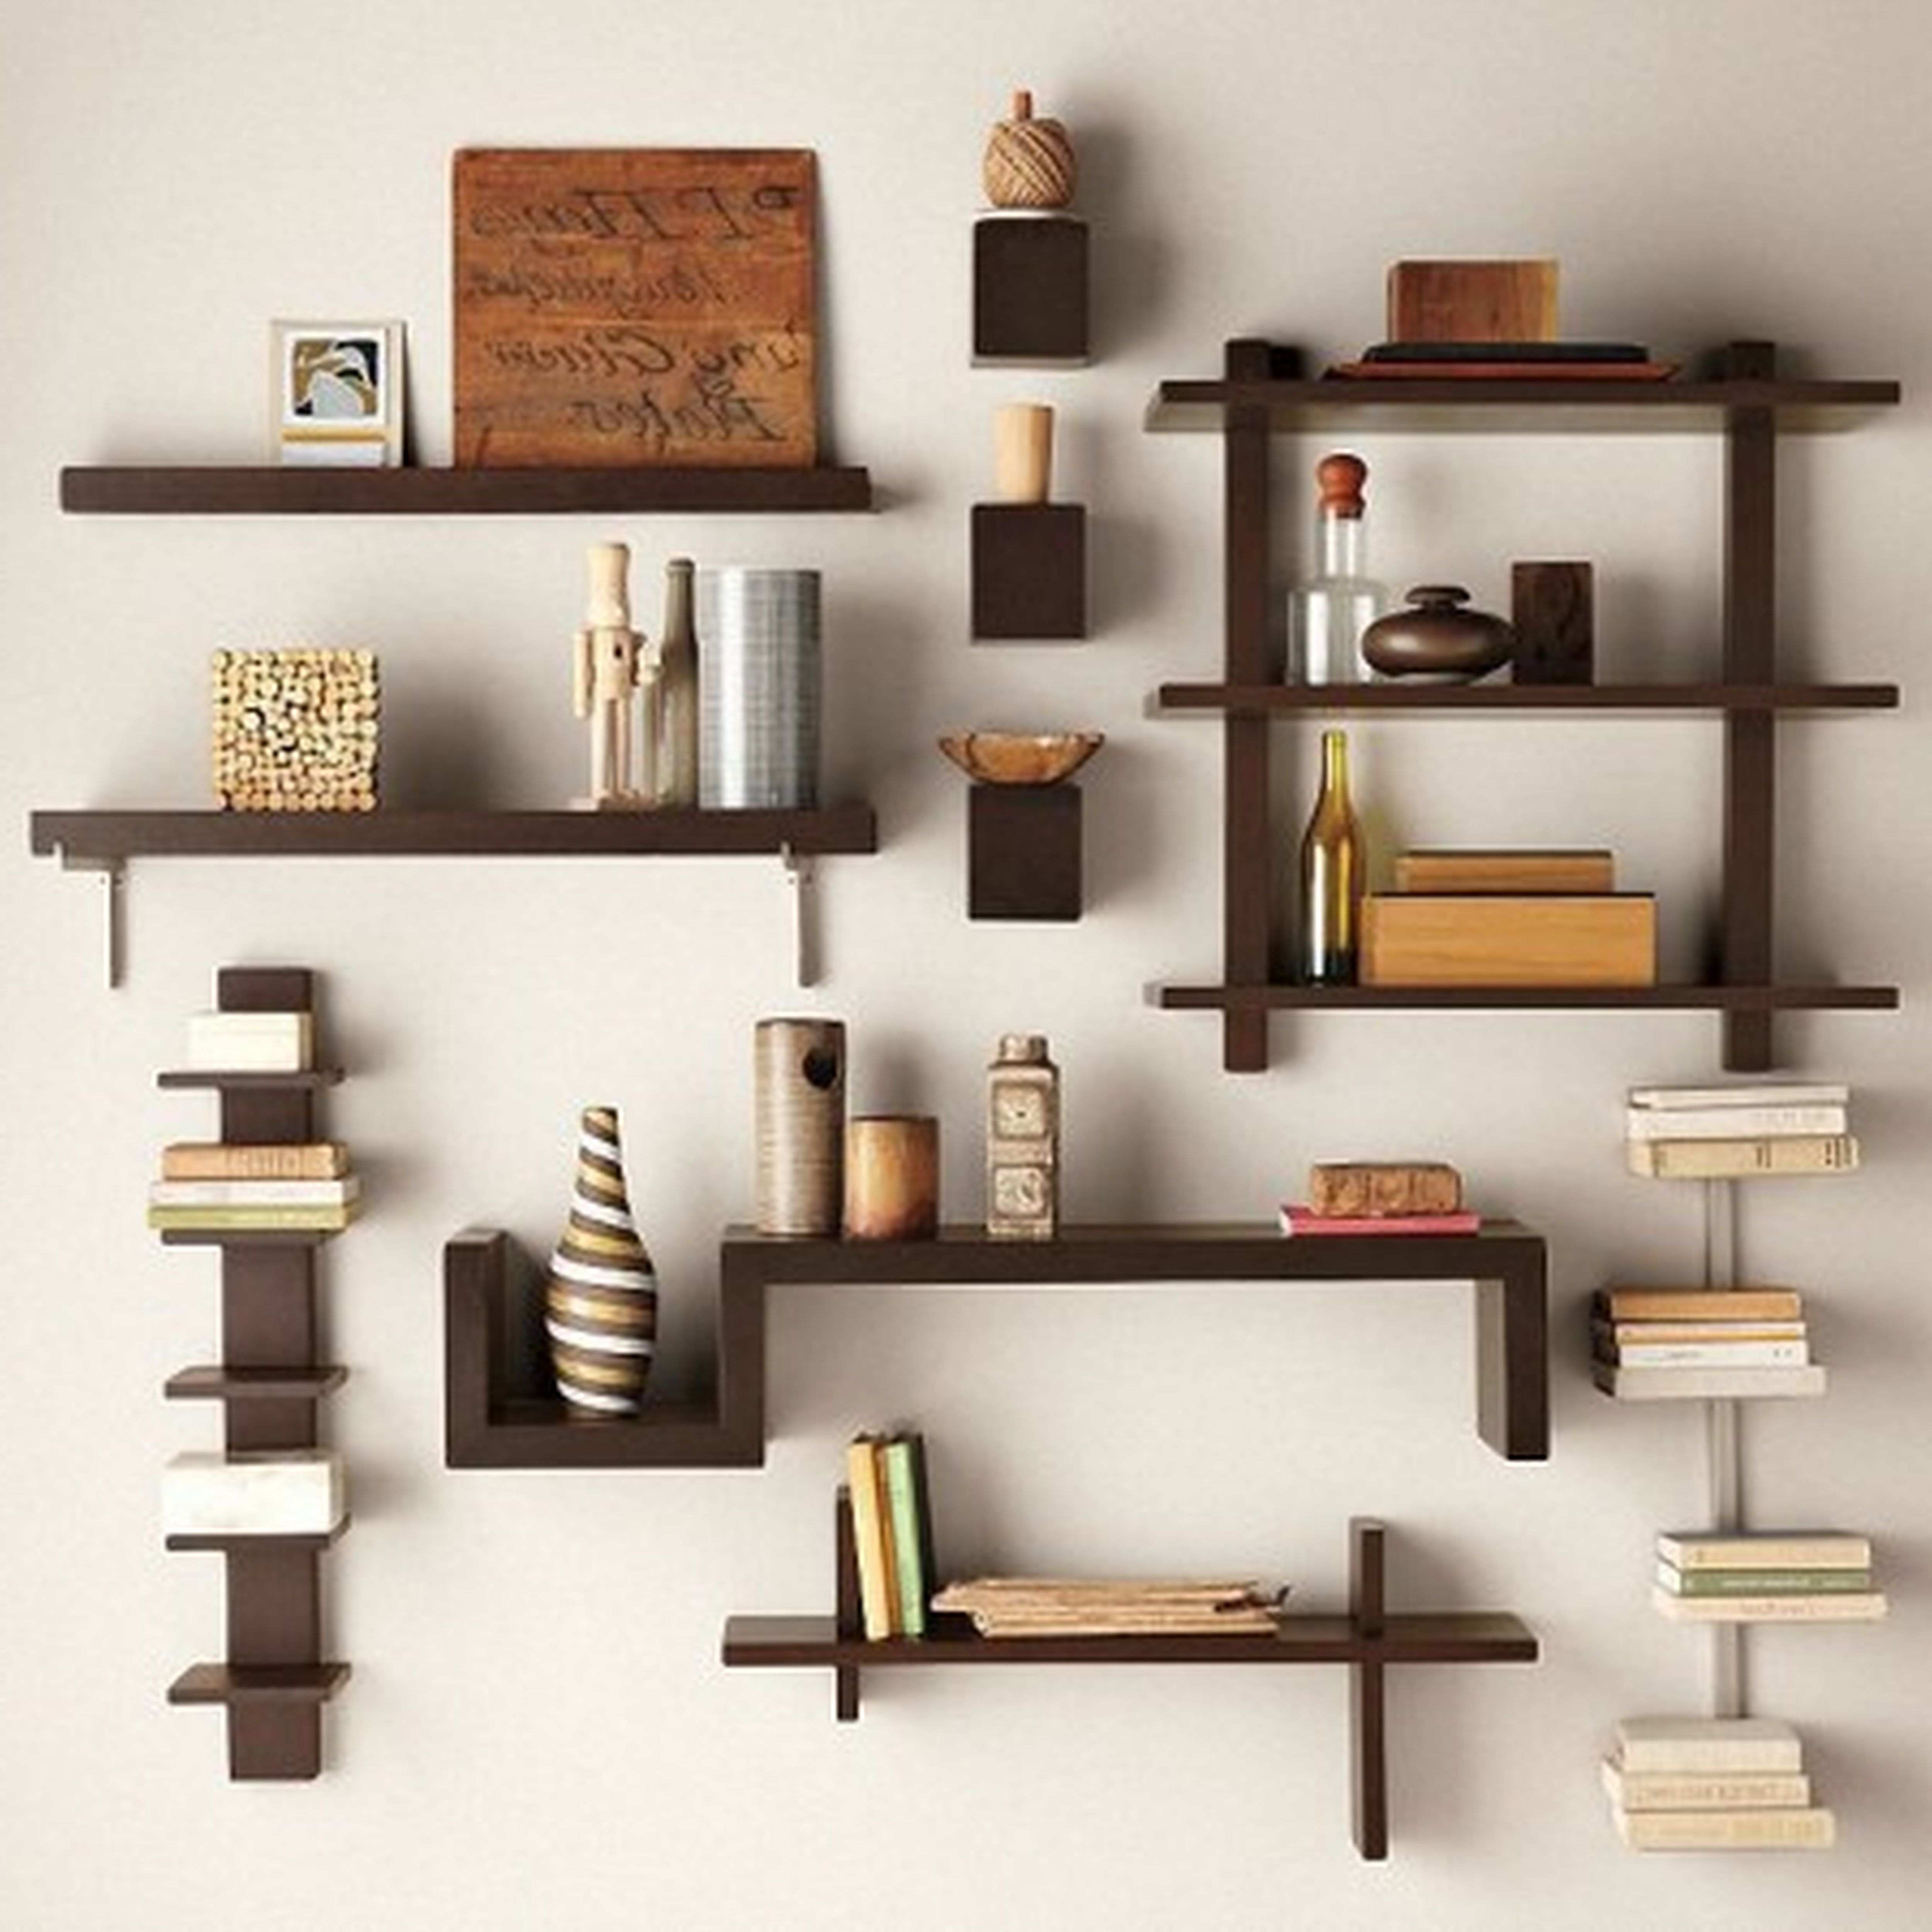 marvelous decorative shelving unit for living room  Decorate Rooms with Decorative Shelving Unit HomesFeed